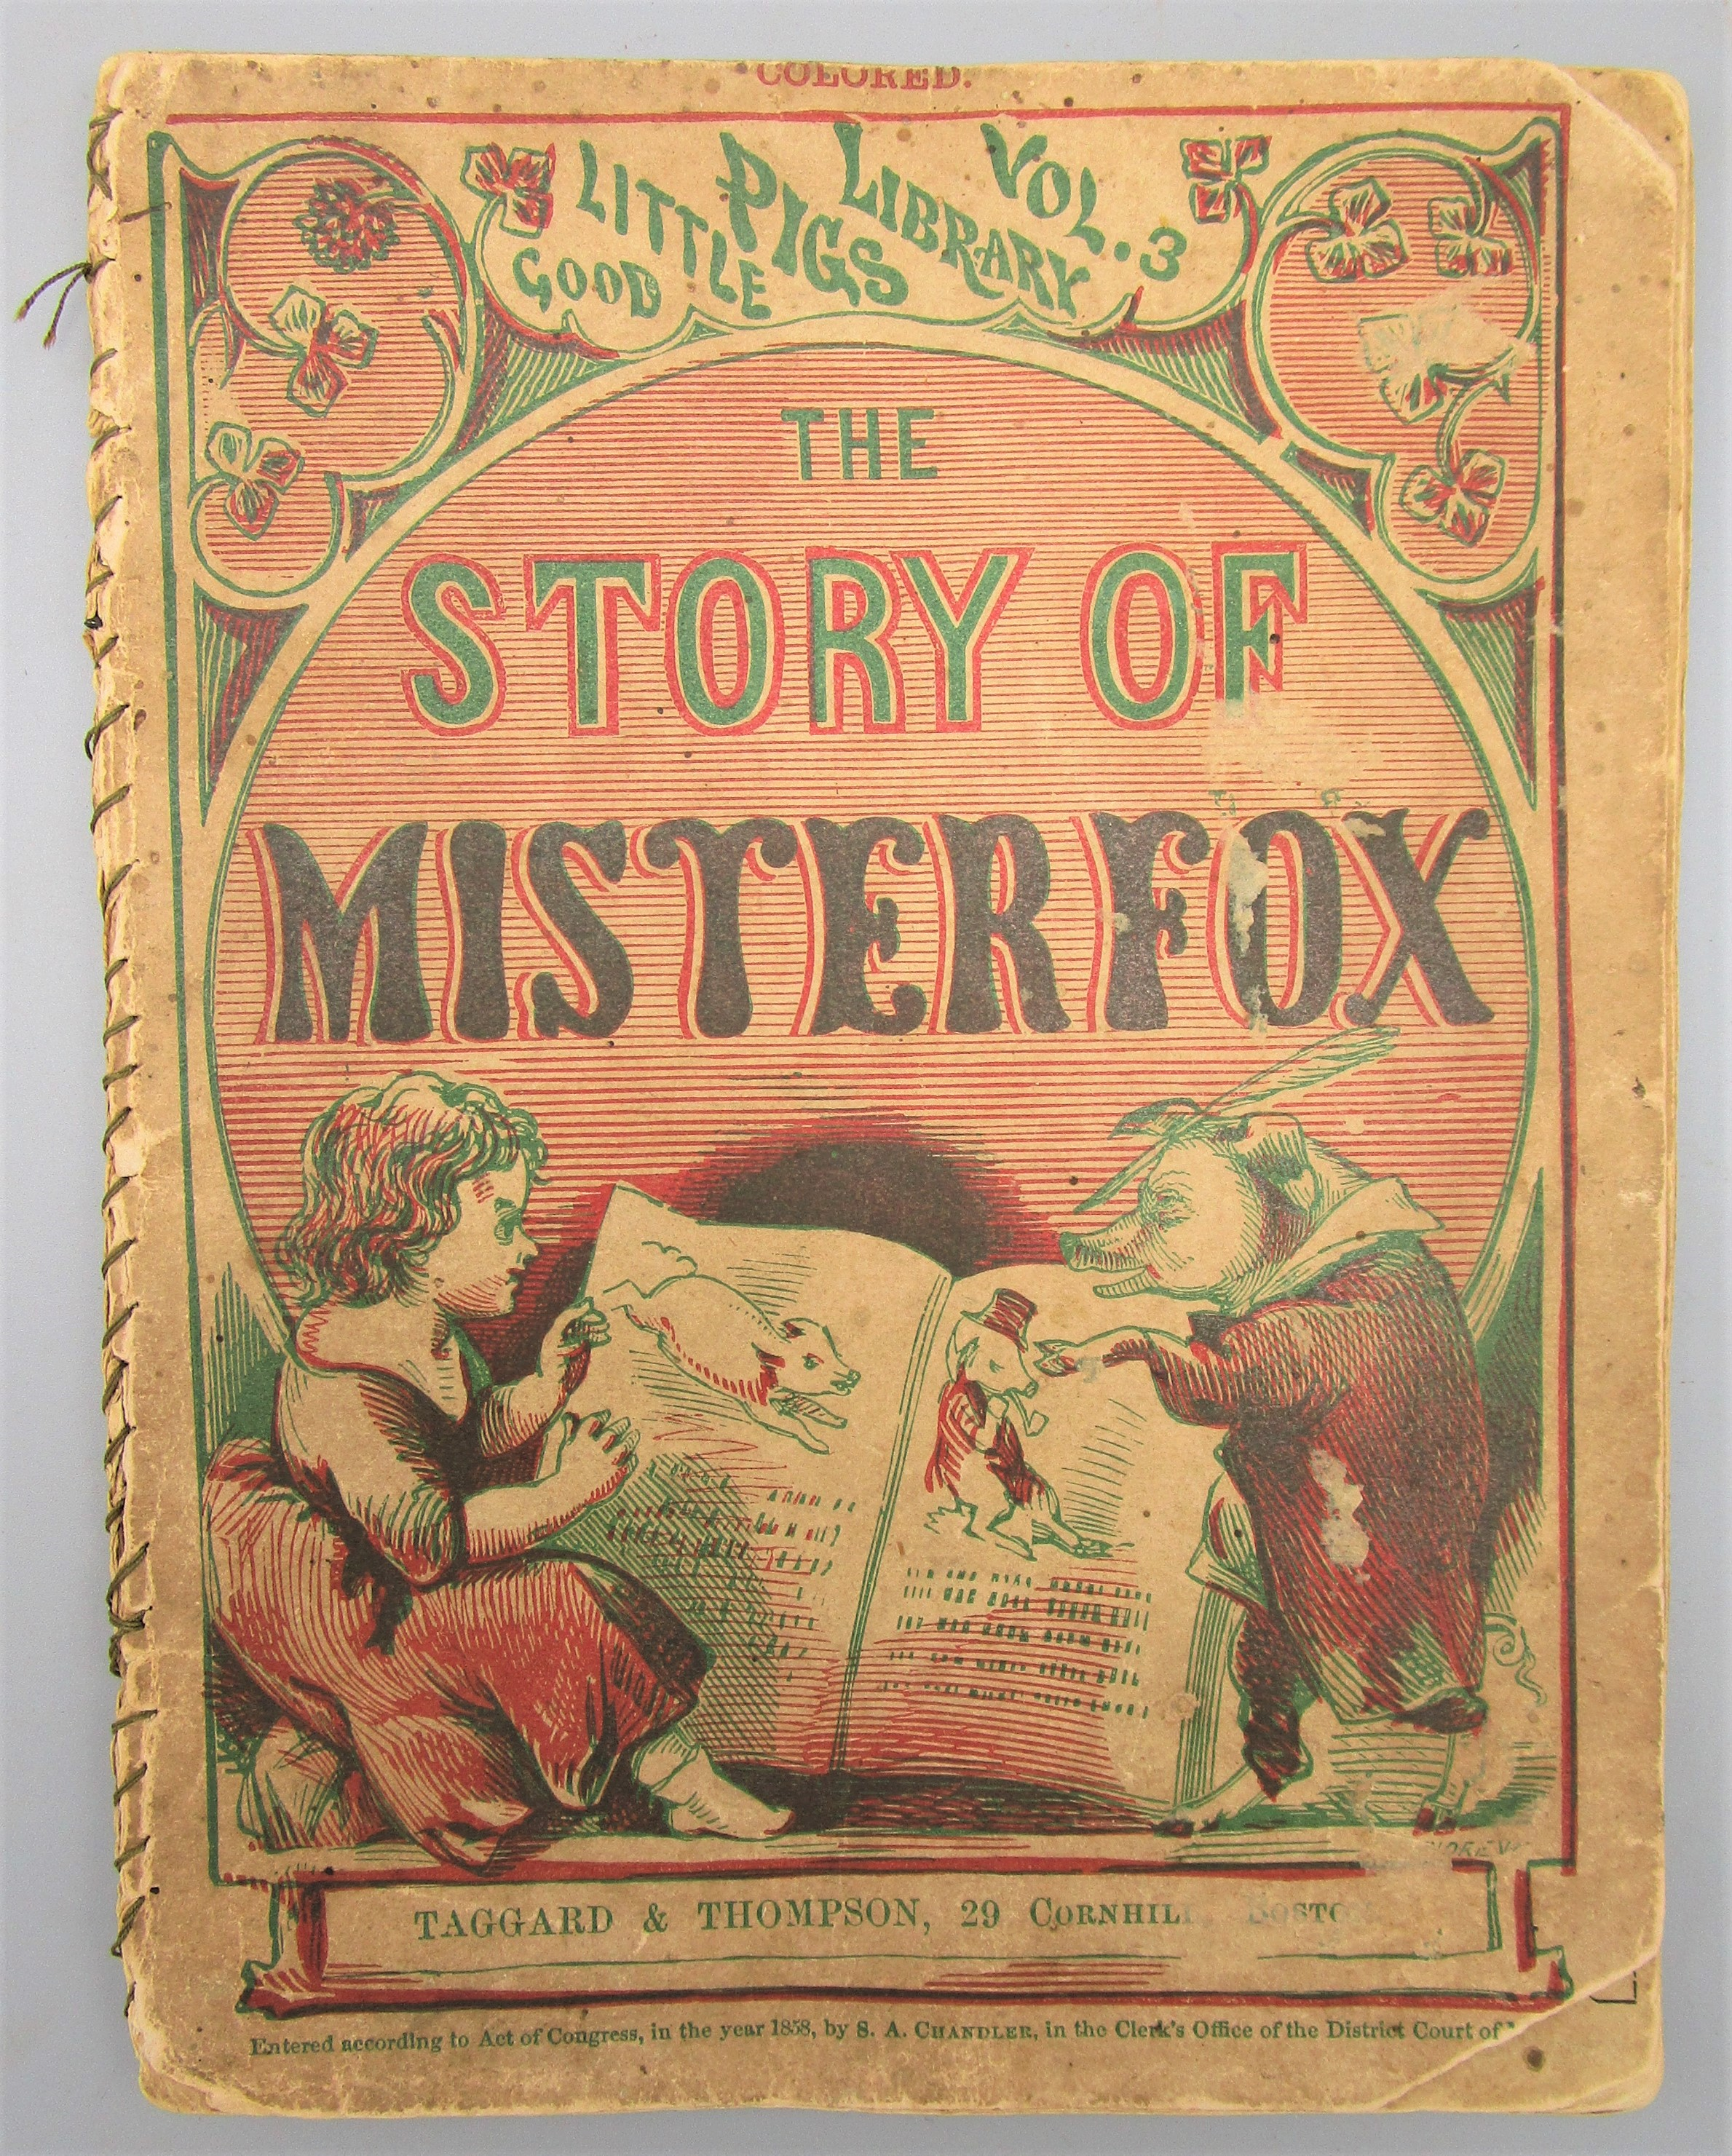 THE STORY OF MISTER FOX - 1858